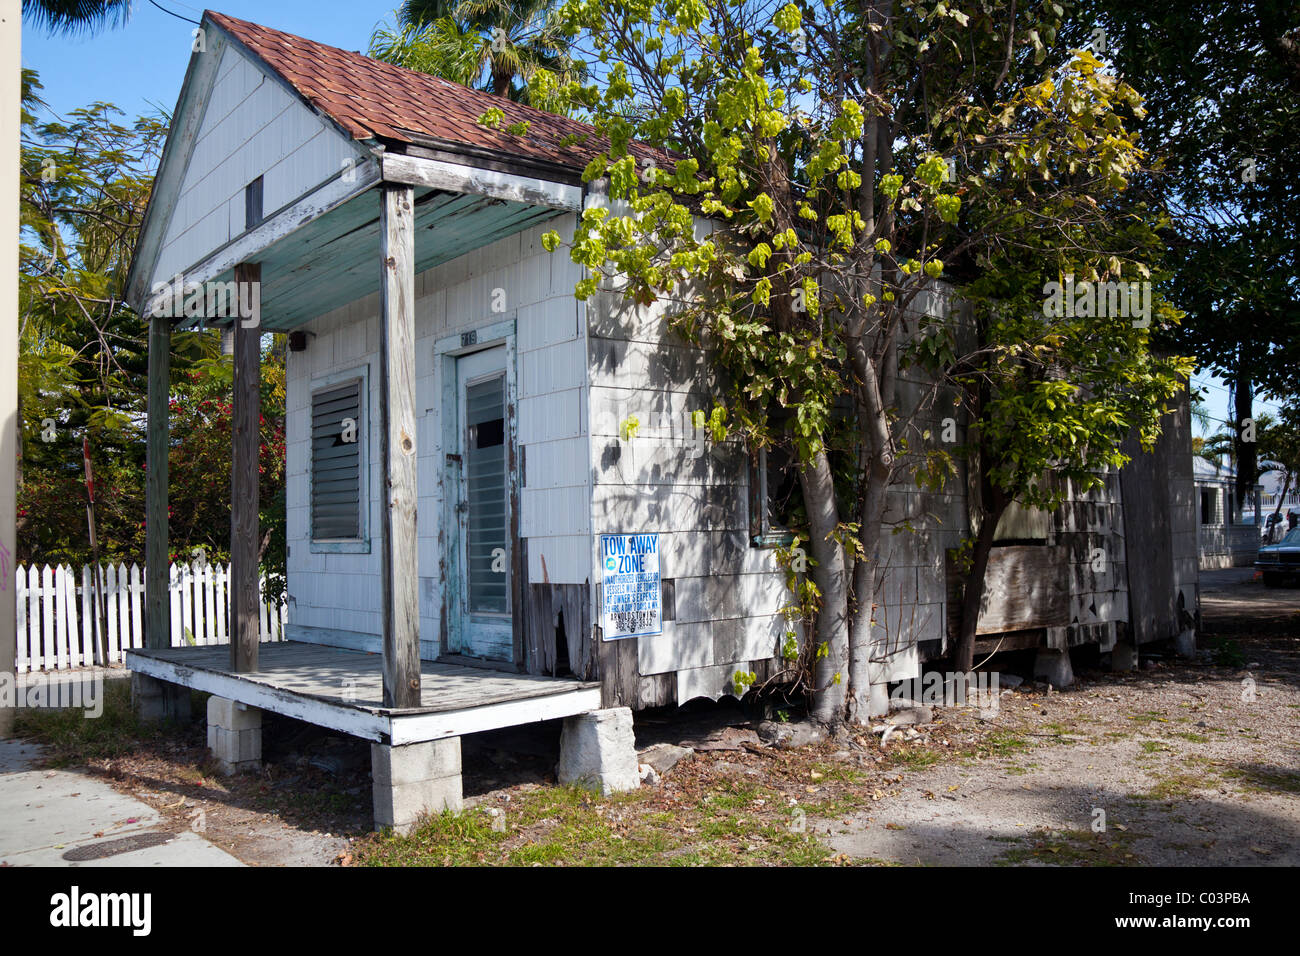 Small old house in Whitehead Street, Key West, Florida, USA Stock Photo